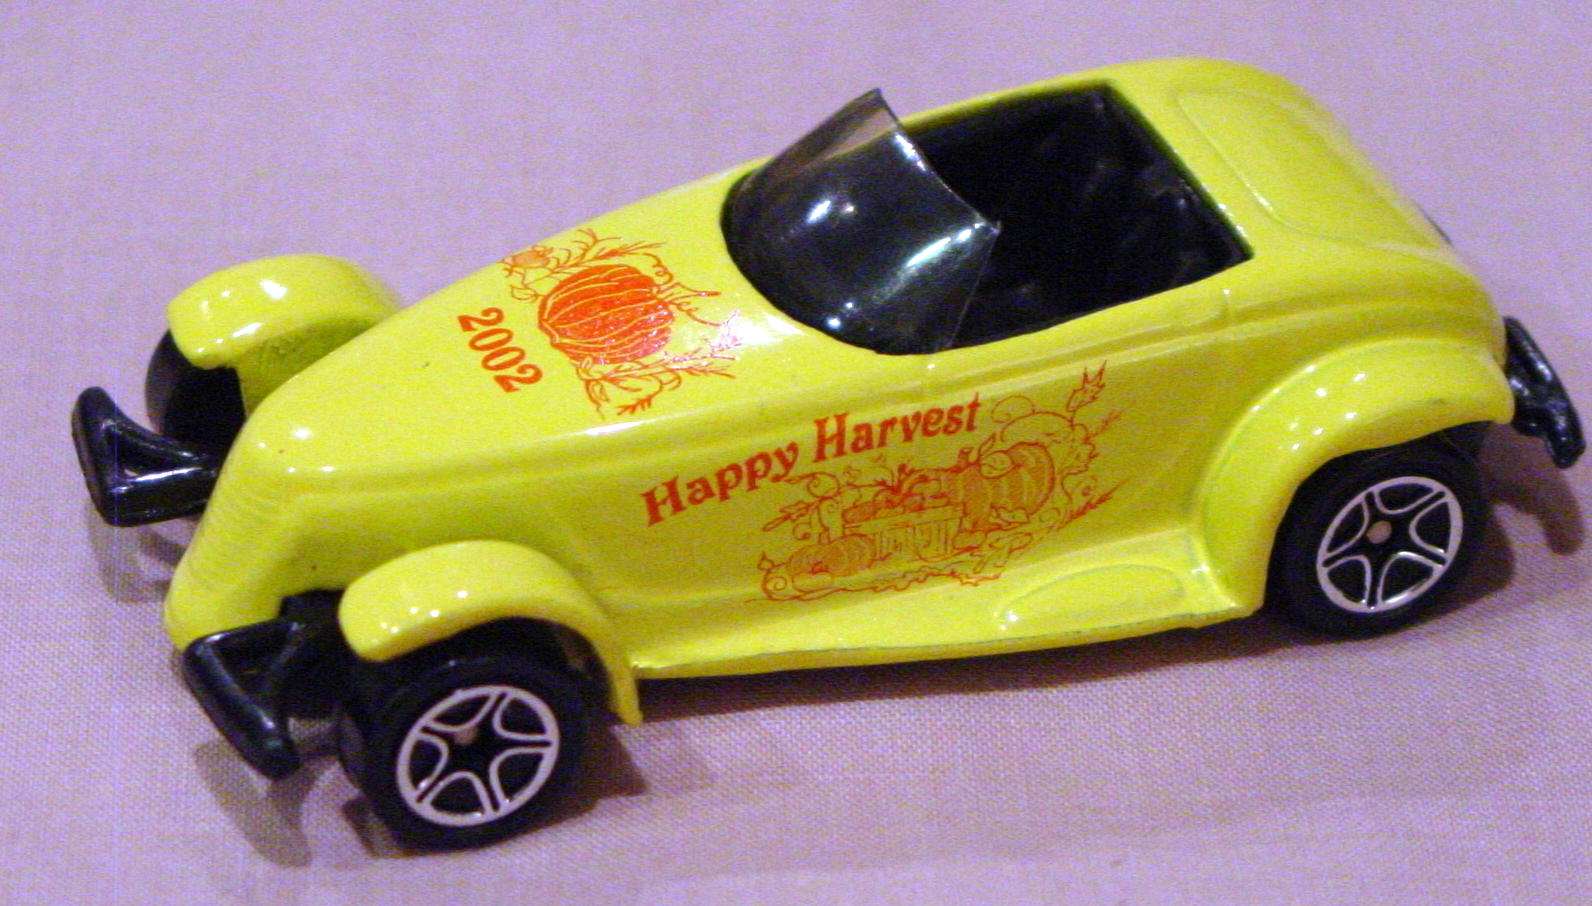 ASAP-CCI 34 G 59 - Prowler Yellow Happy Harvest 2002 CCI